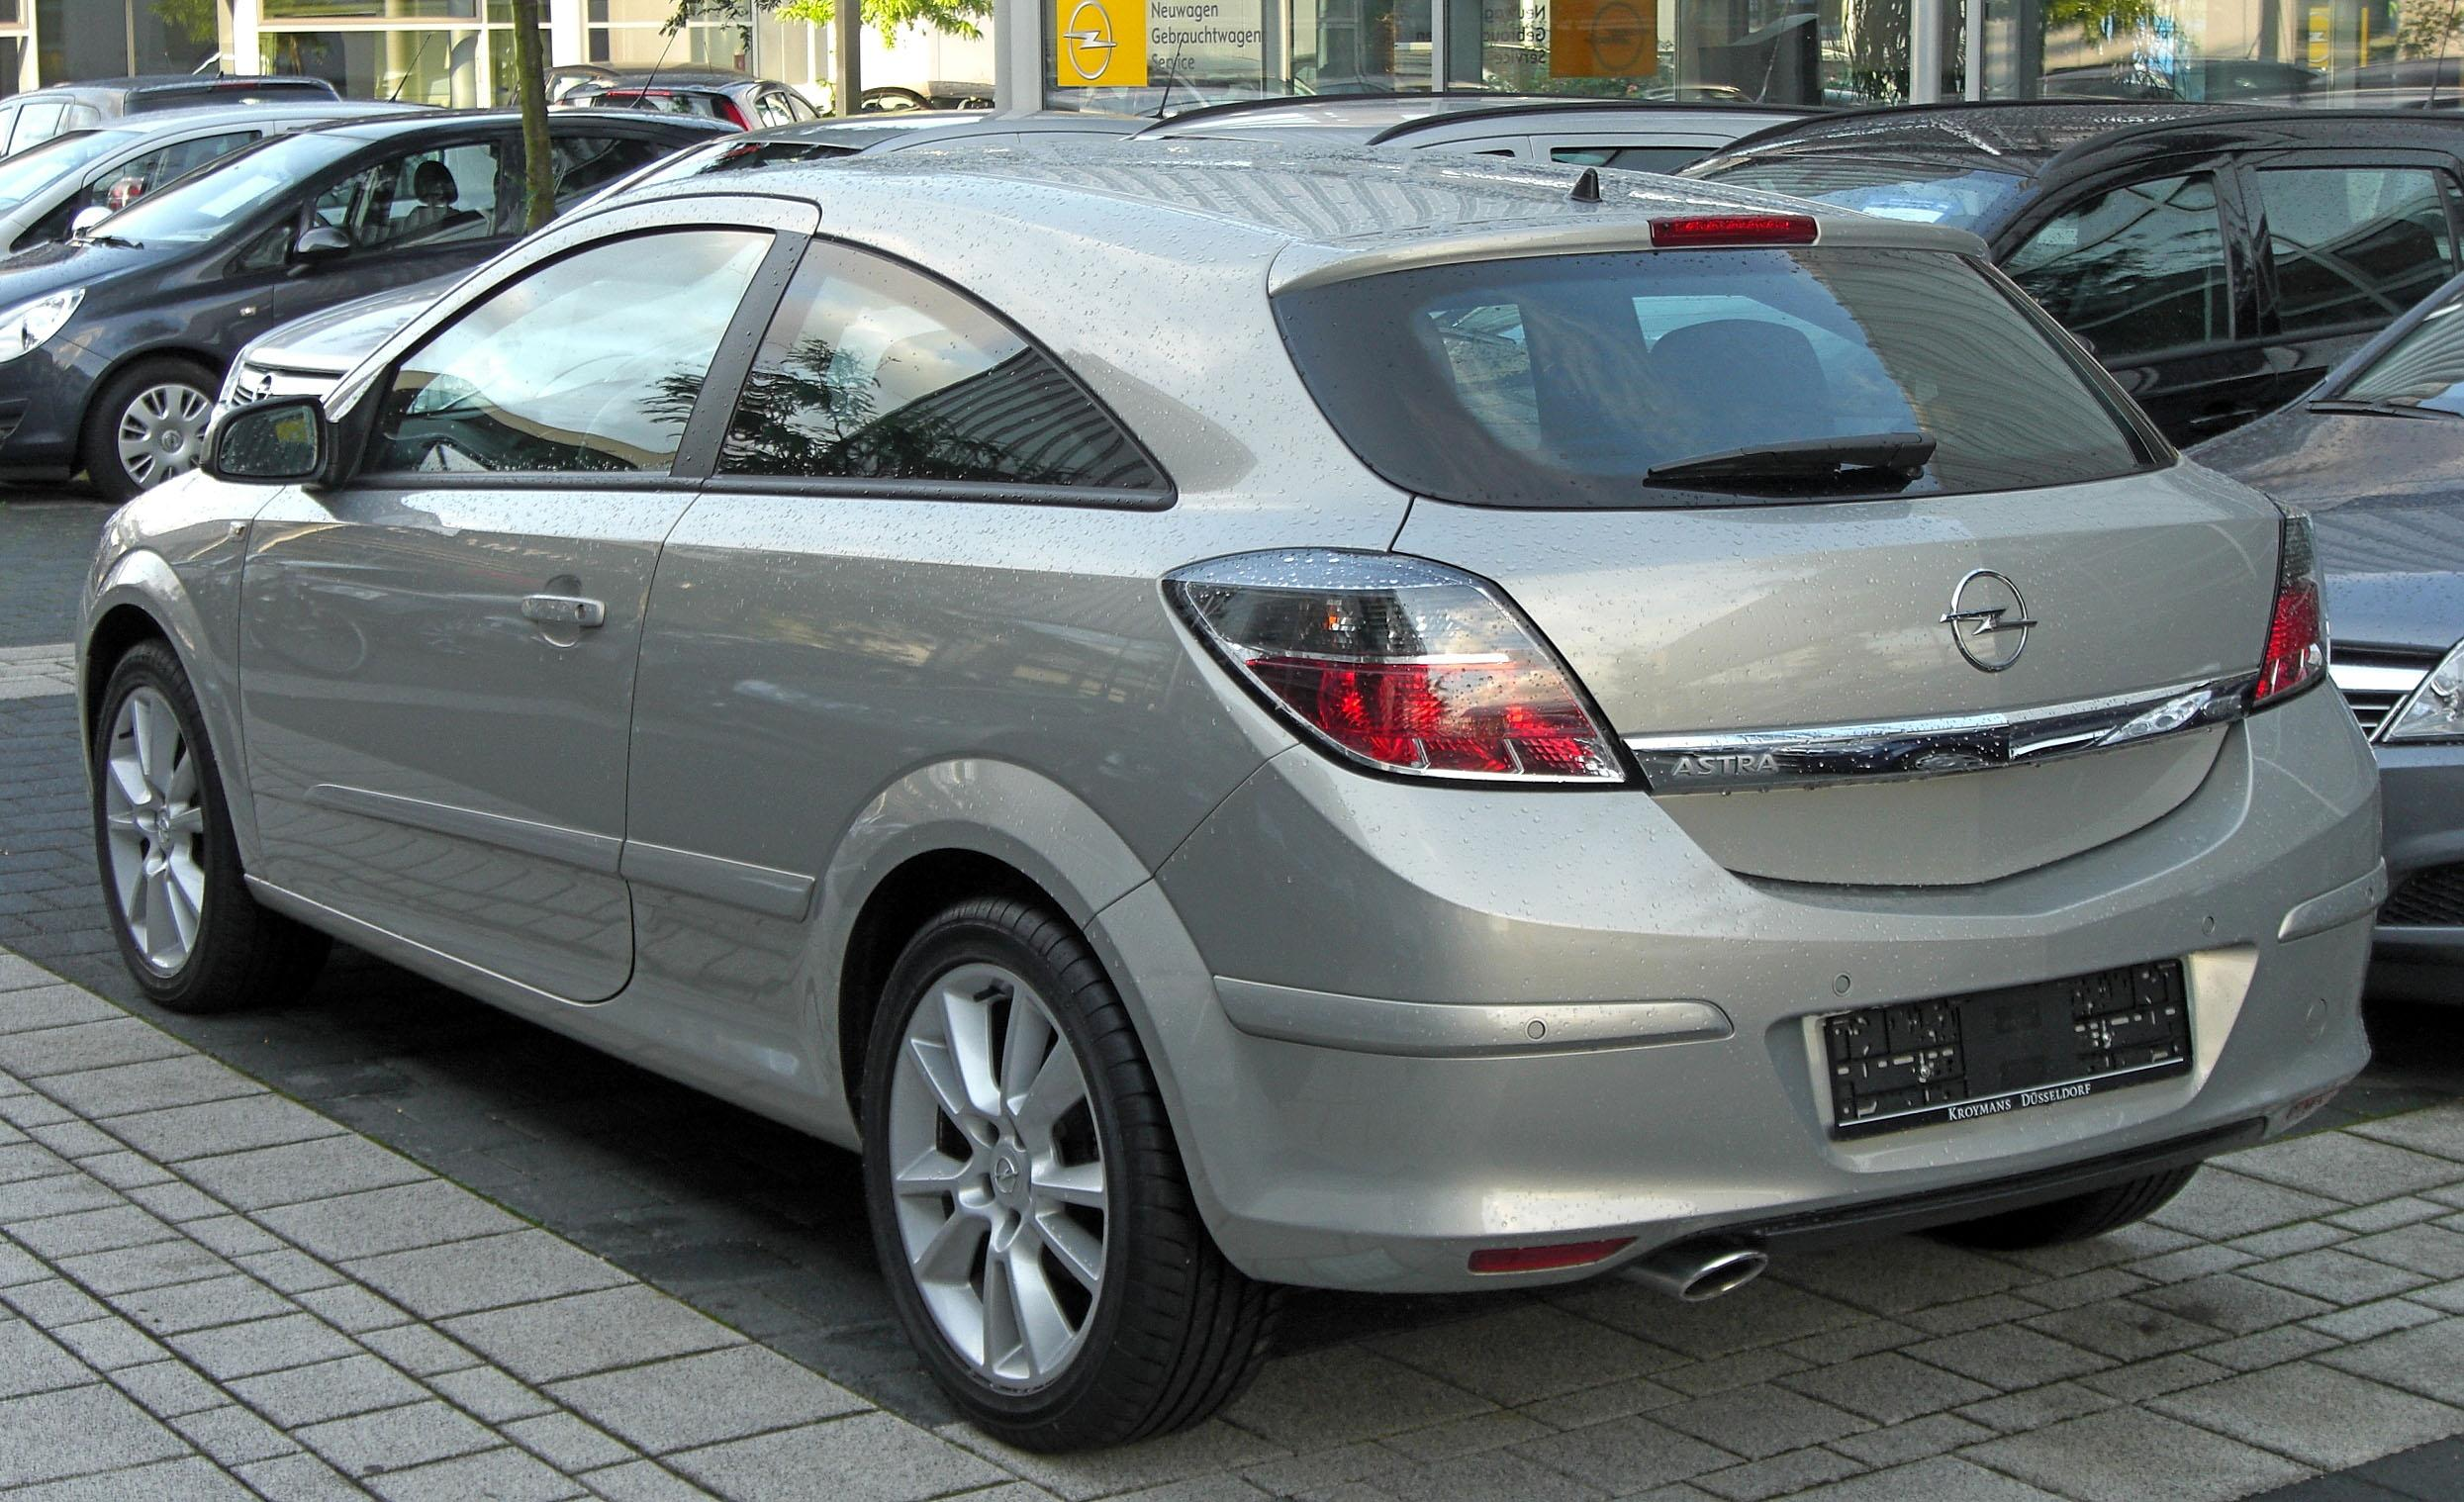 Opel Astra 1.9 CDTI photo 15